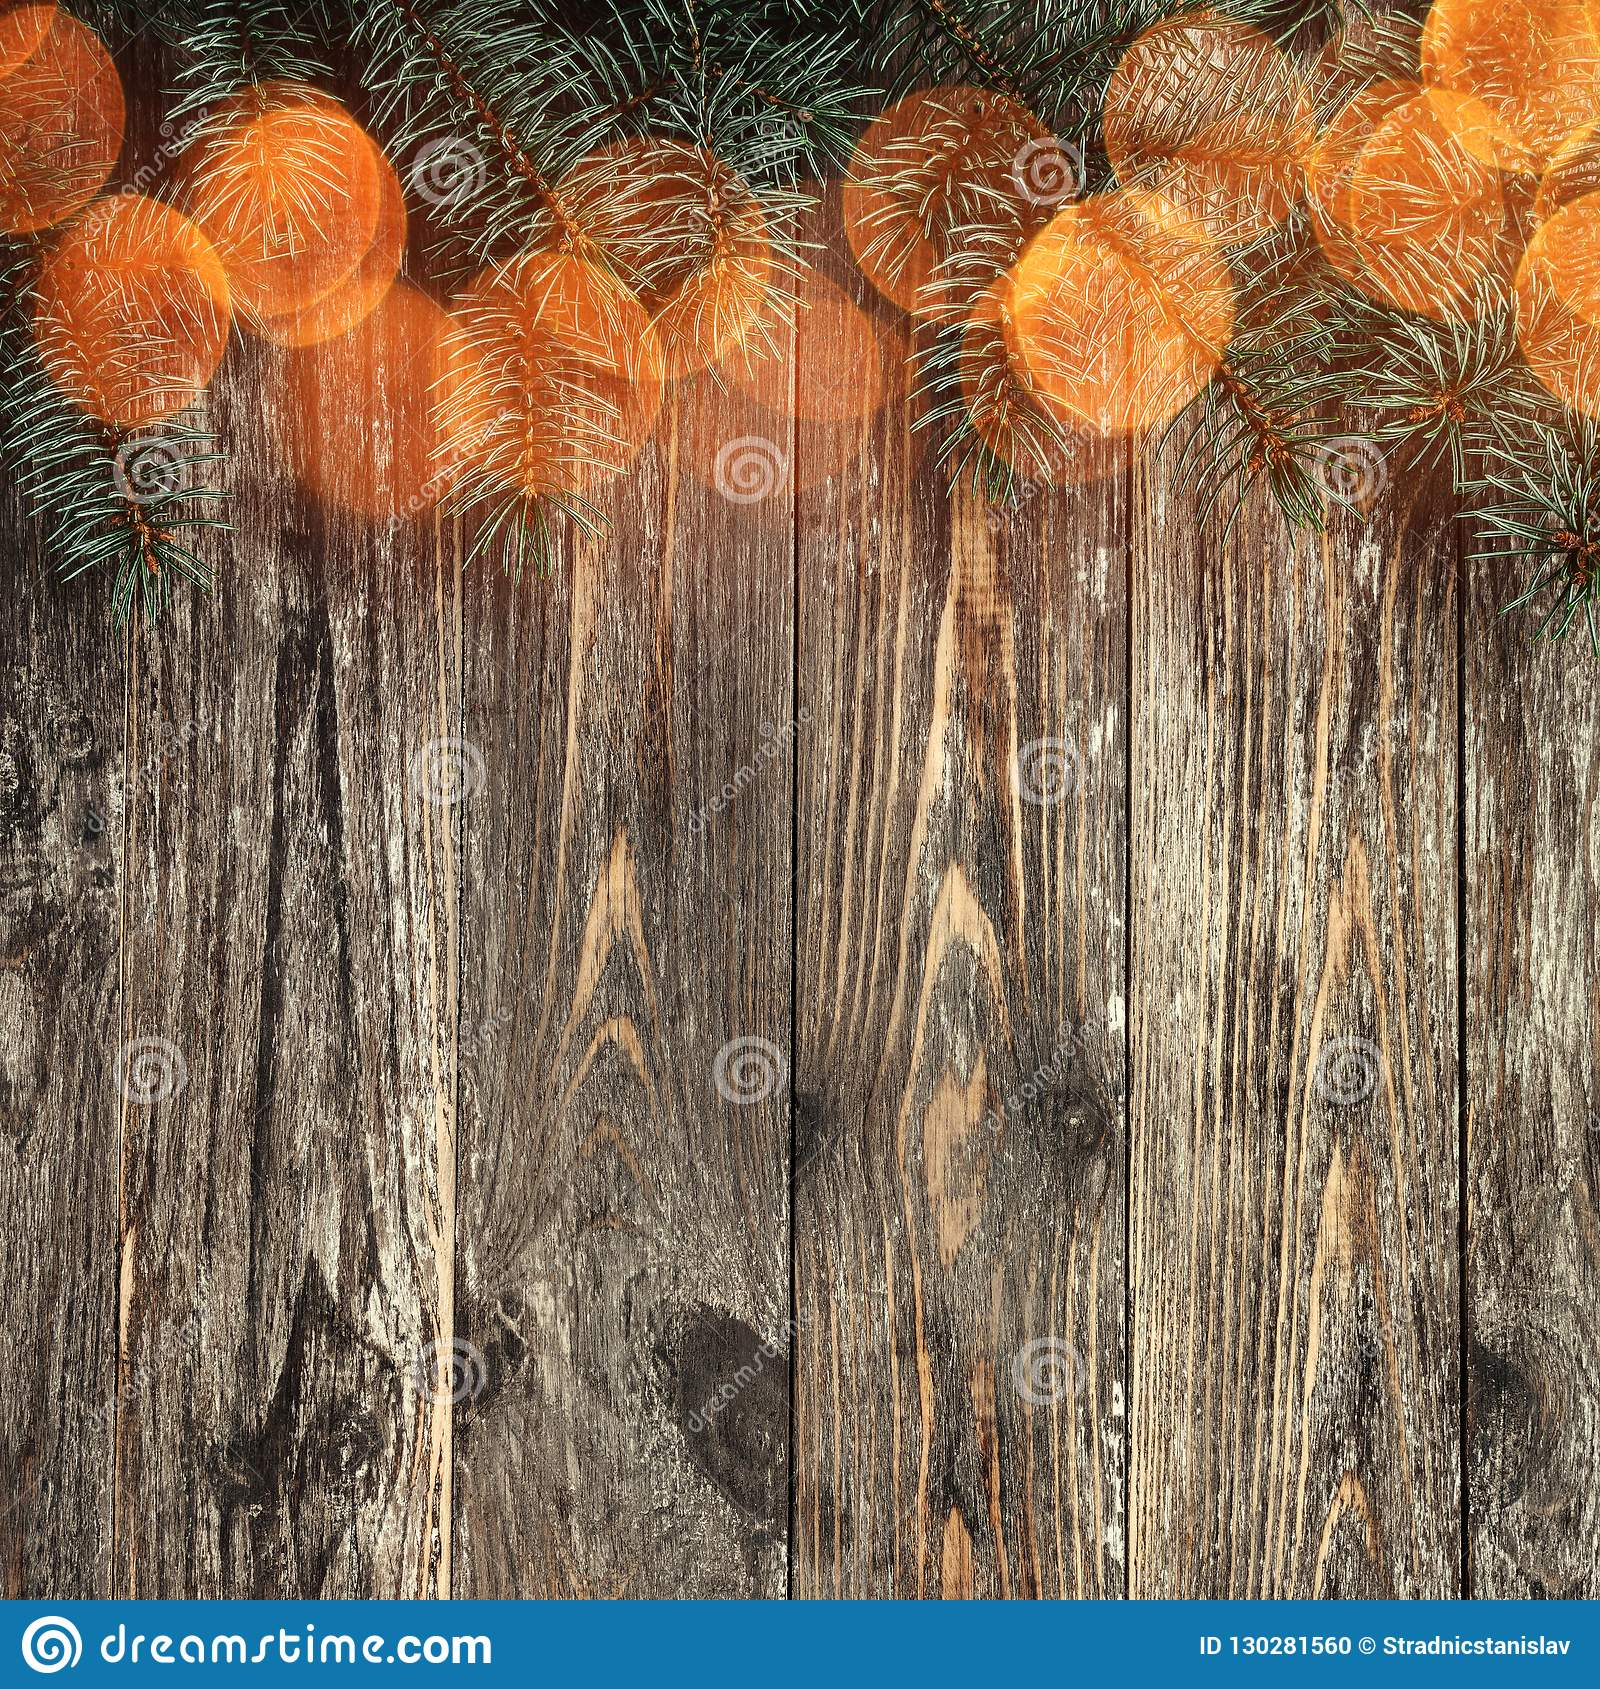 Old wood background with fir branches. Space for a greeting message. Christmas card. Top view. Congratulation card